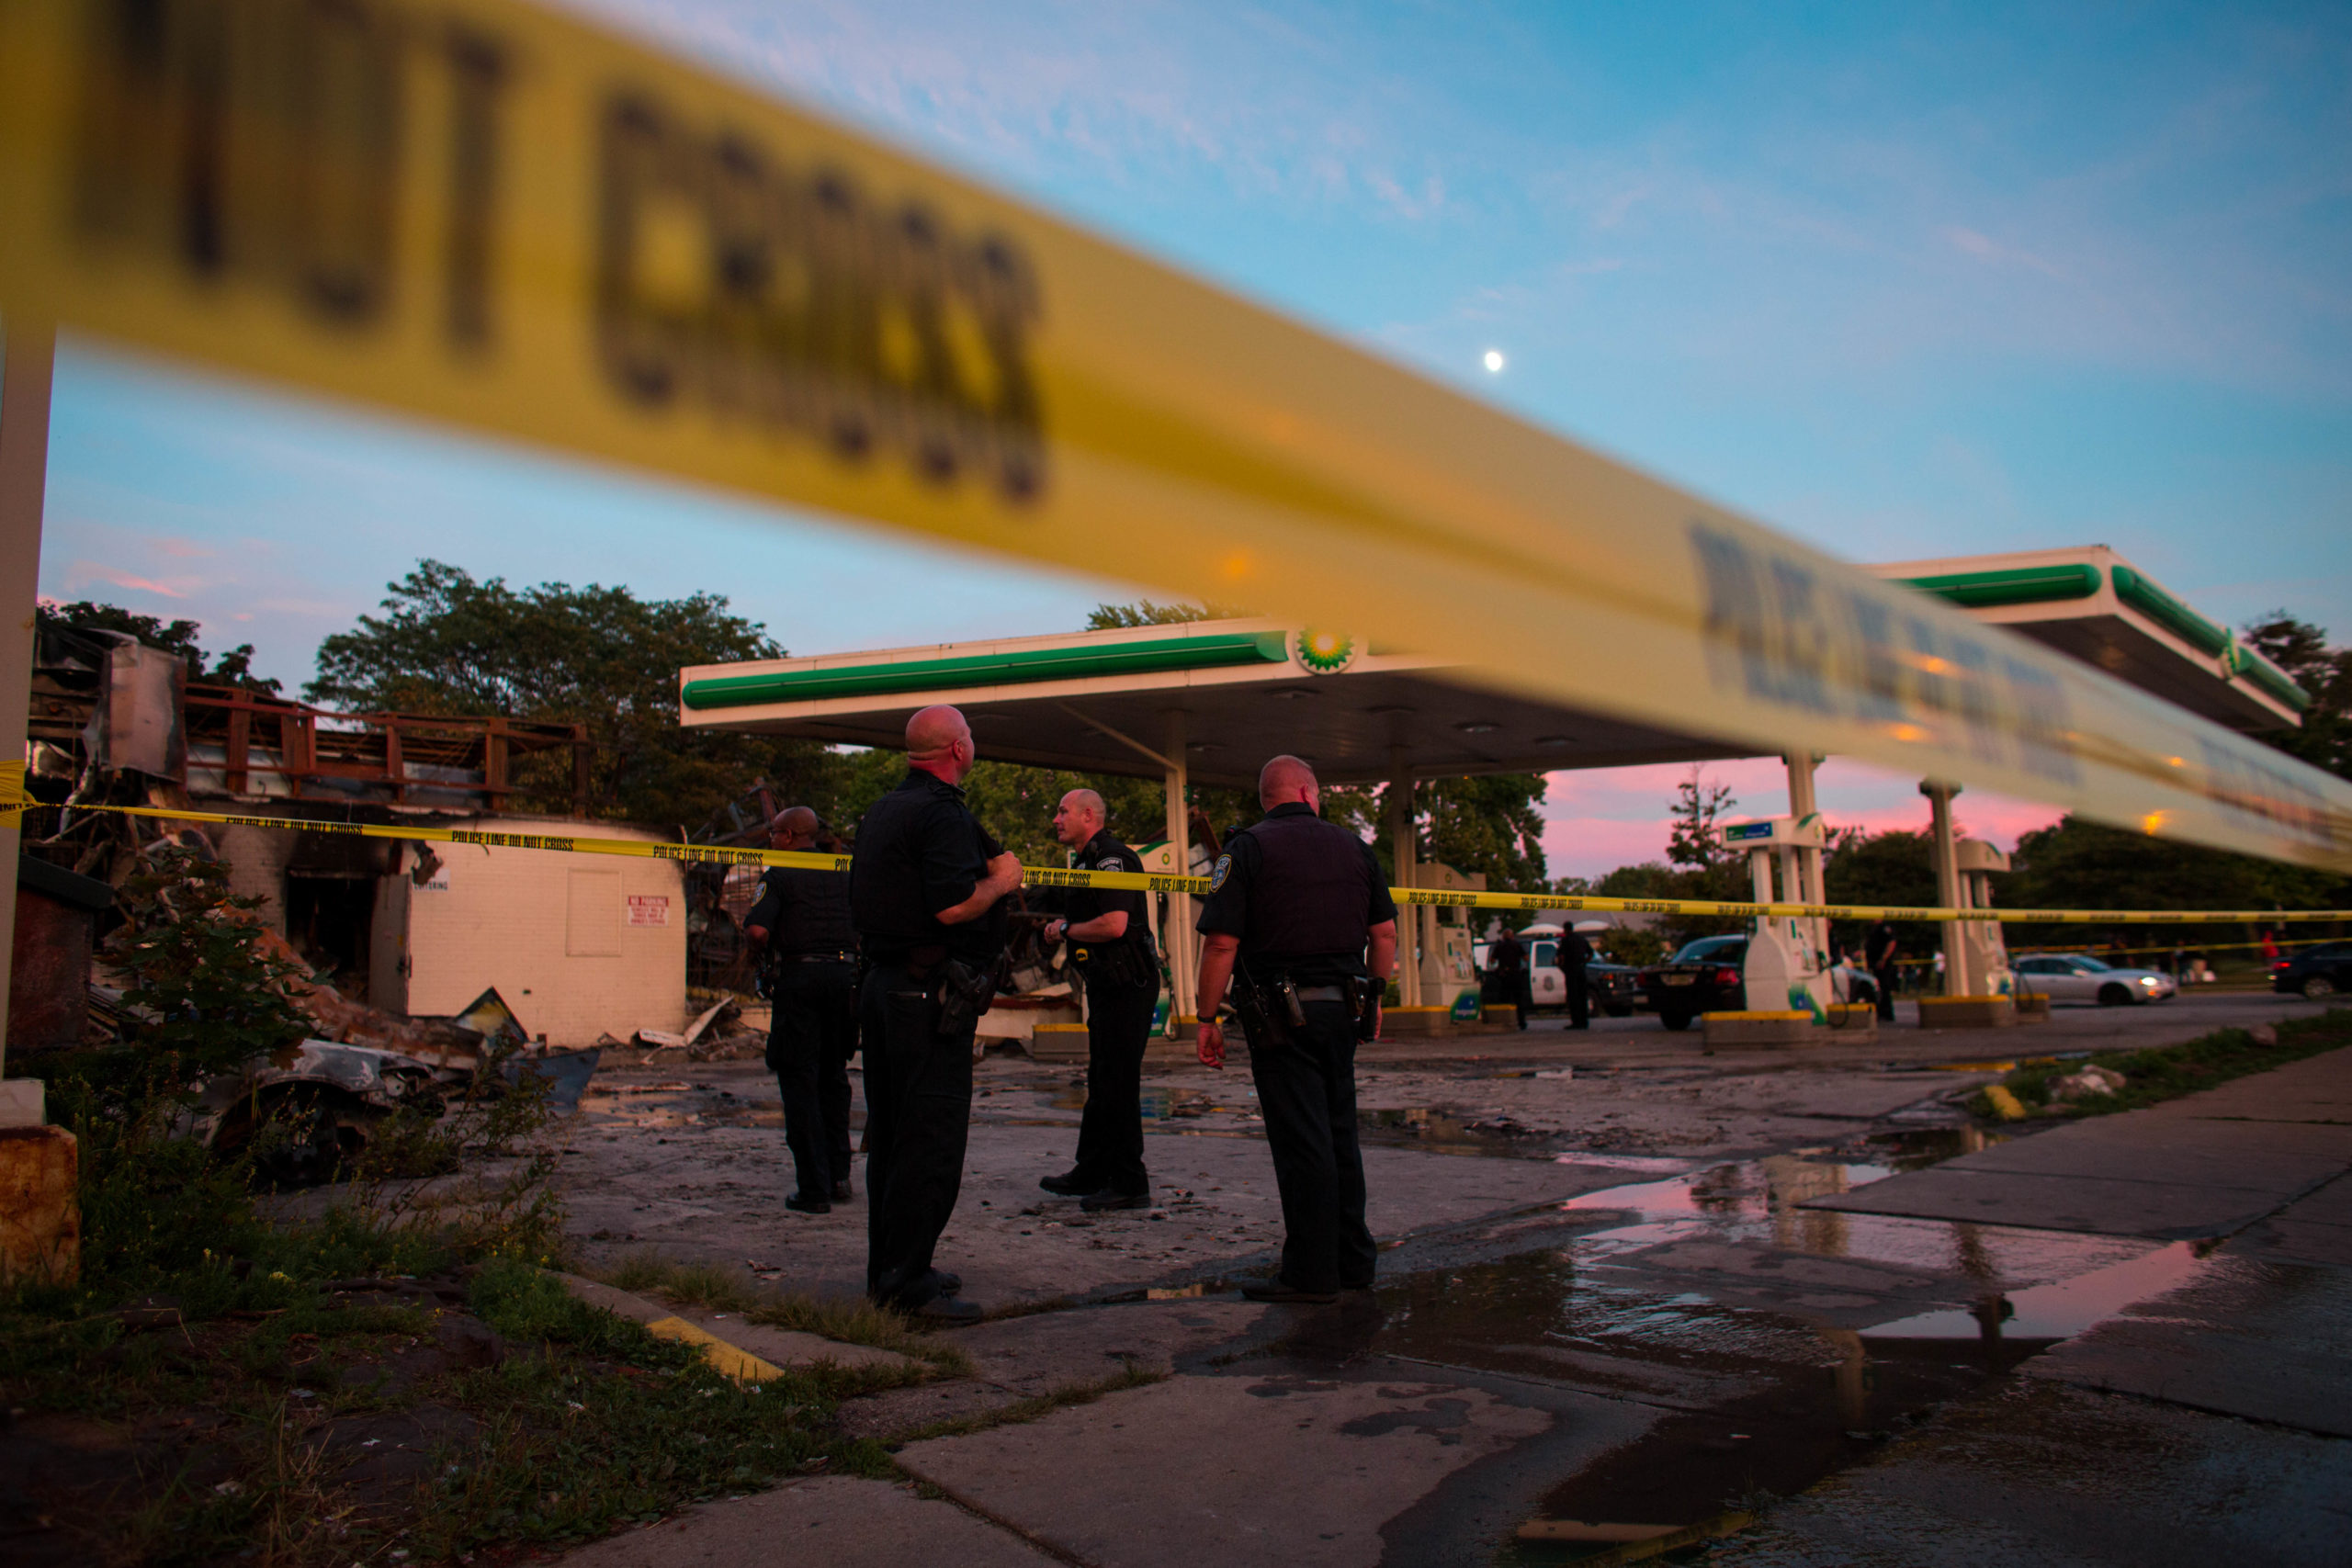 Police officers stand guard as crowds gather for a second night near the BP gas station that was burned after an officer-involved killing August 14, 2016 in Milwaukee, Wisconsina. (Photo by Darren Hauck/Getty Images)